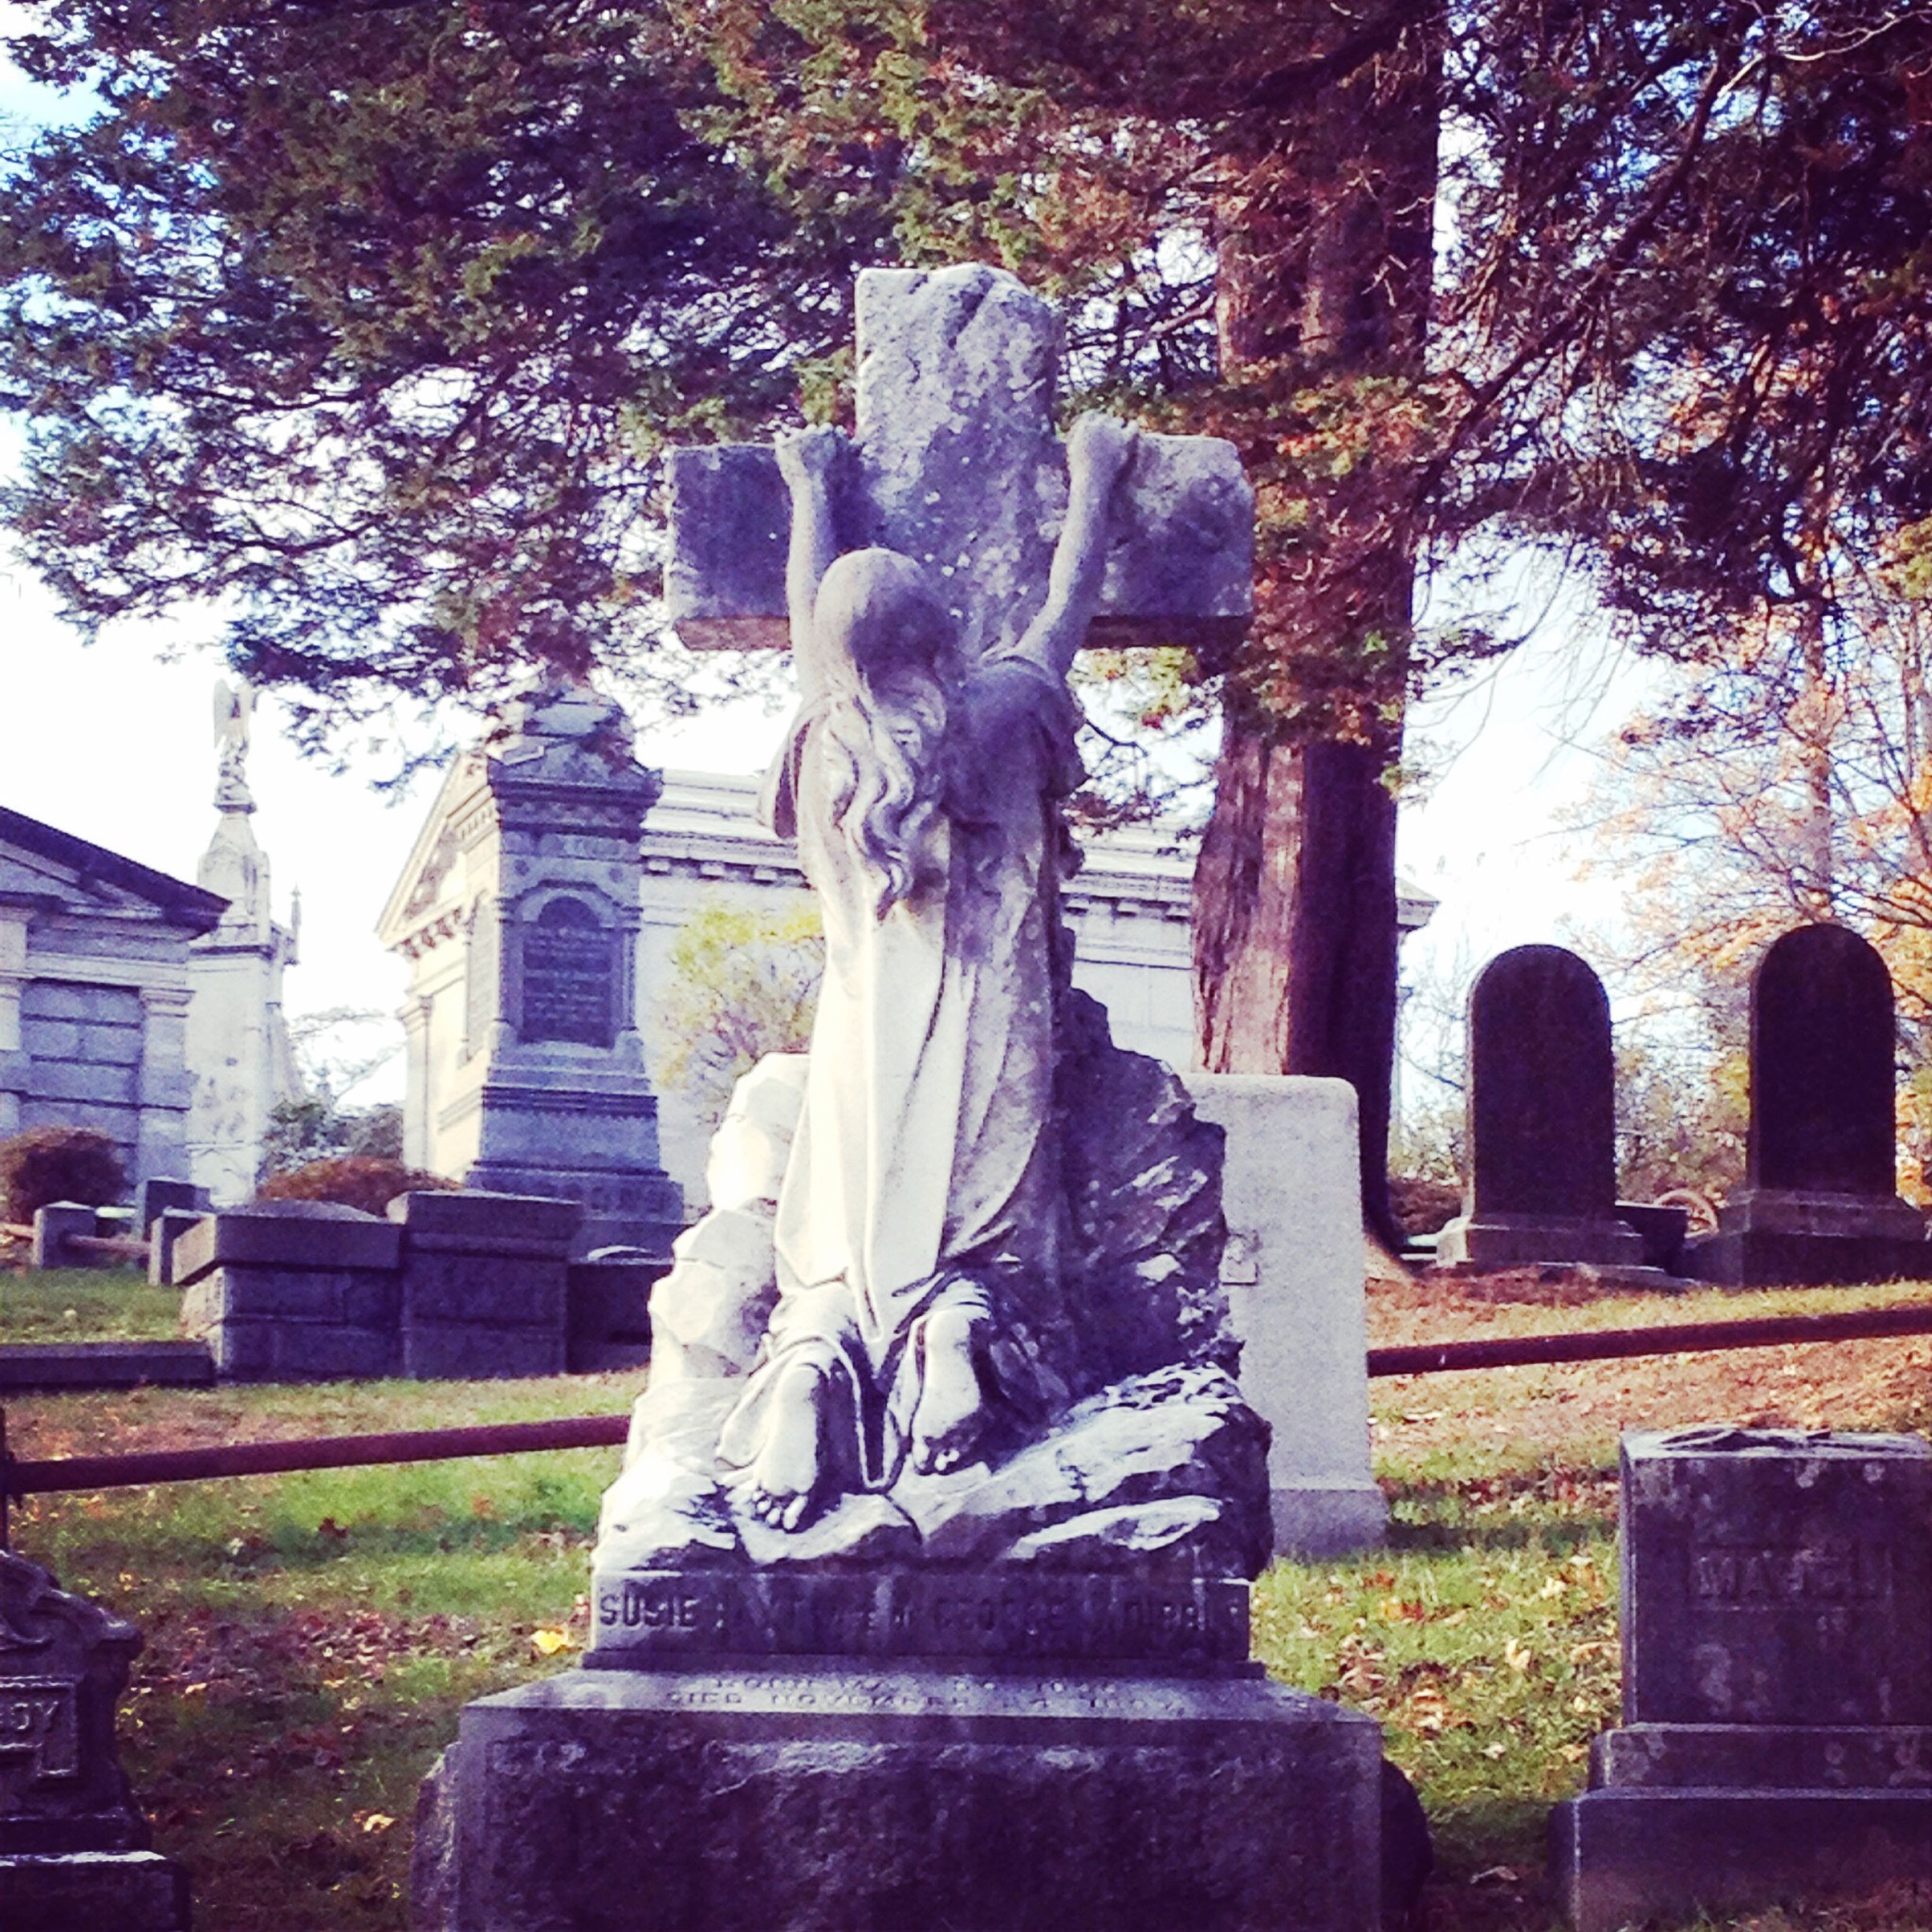 statue, human representation, sculpture, art and craft, art, creativity, architecture, built structure, tree, building exterior, religion, spirituality, cemetery, history, place of worship, tombstone, memorial